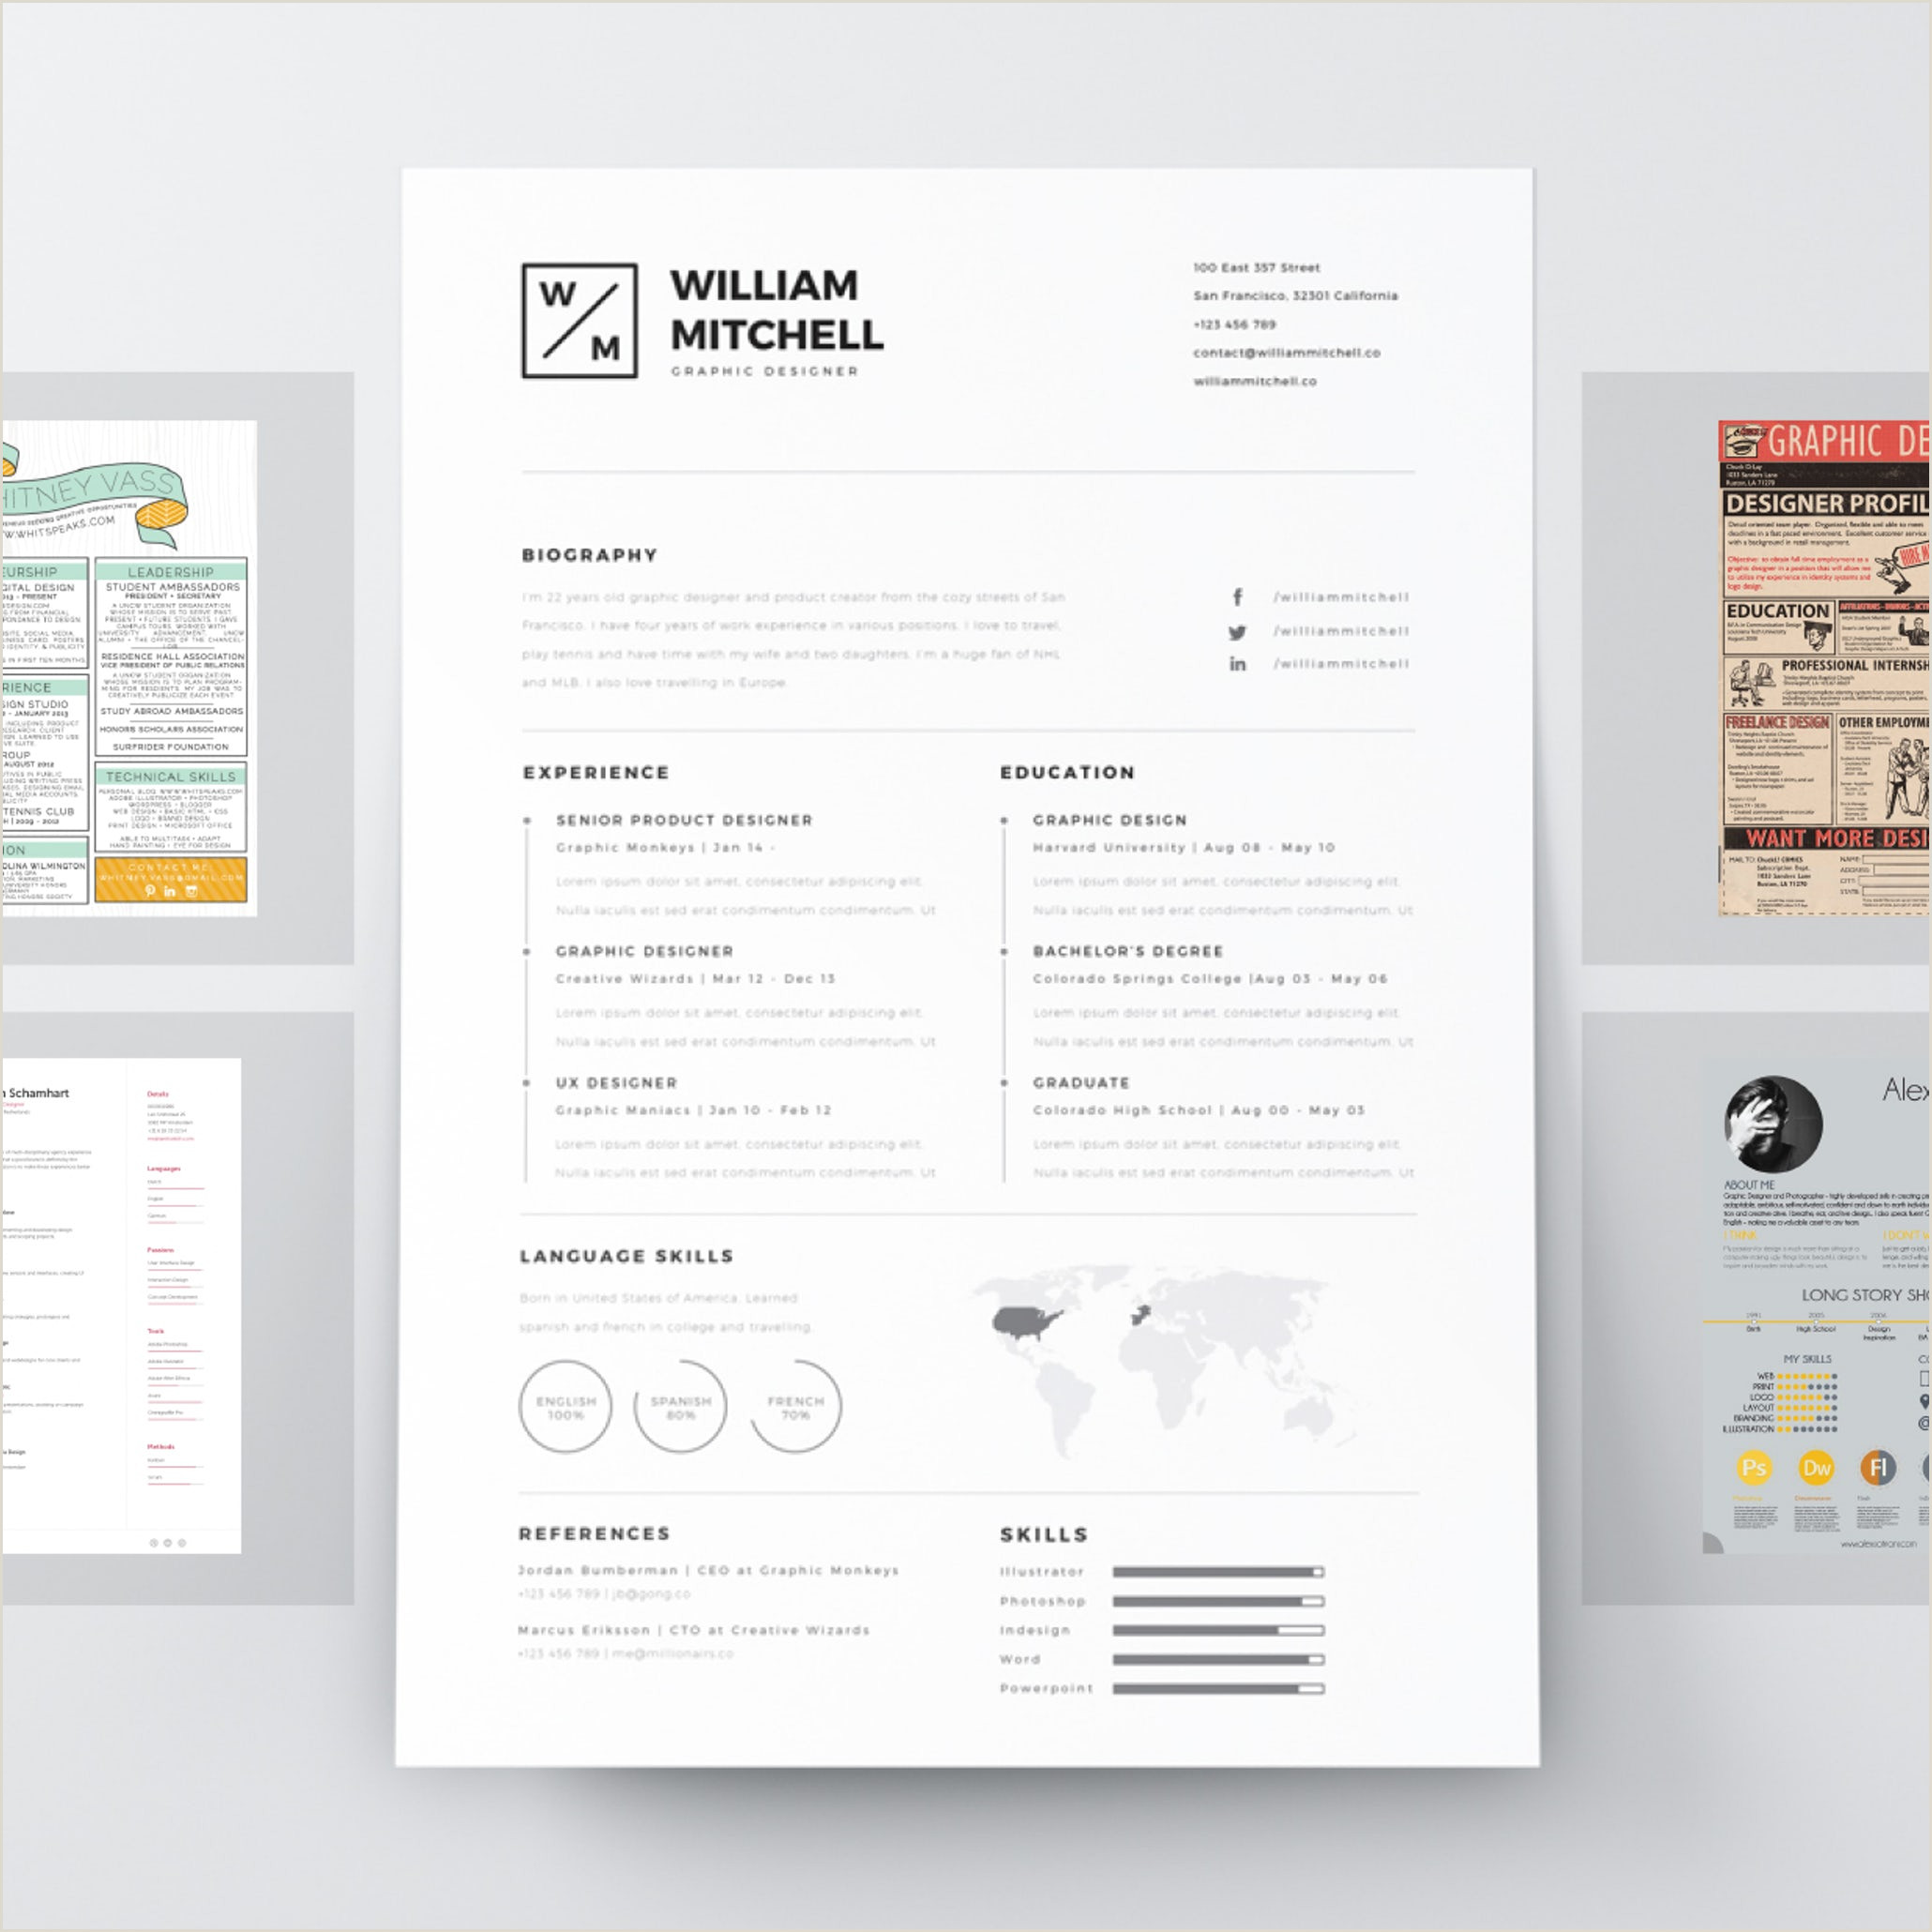 Standard Cv format In Bd 7 Resume Design Principles that Will You Hired 99designs